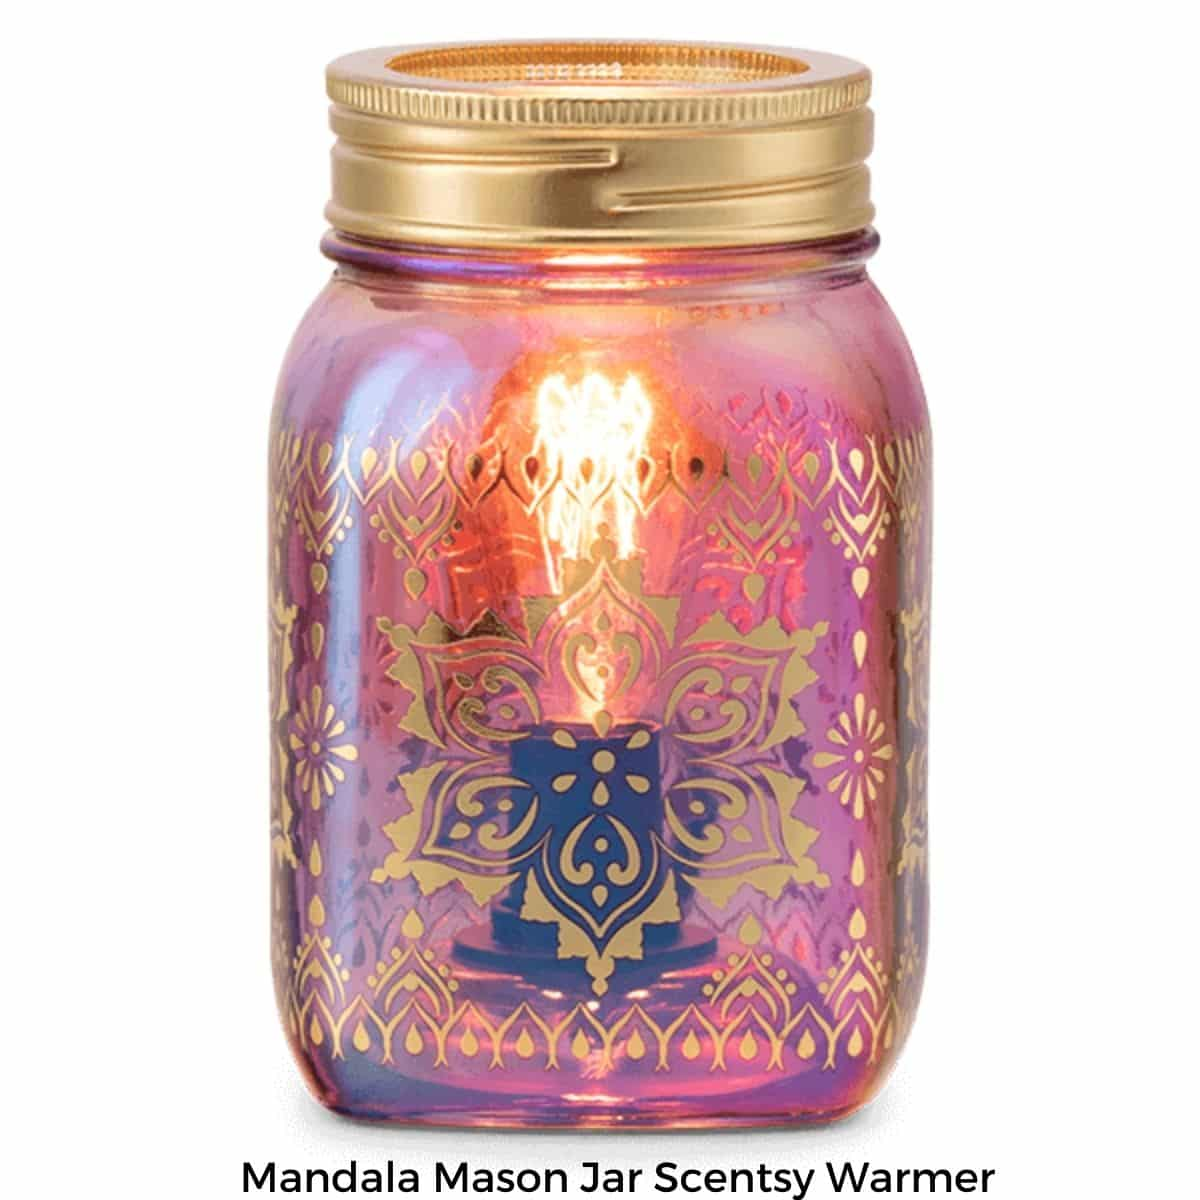 NEW! Mandala Mason Jar Scentsy Warmer | Summer 2021 | Incandescent.Scentsy.us